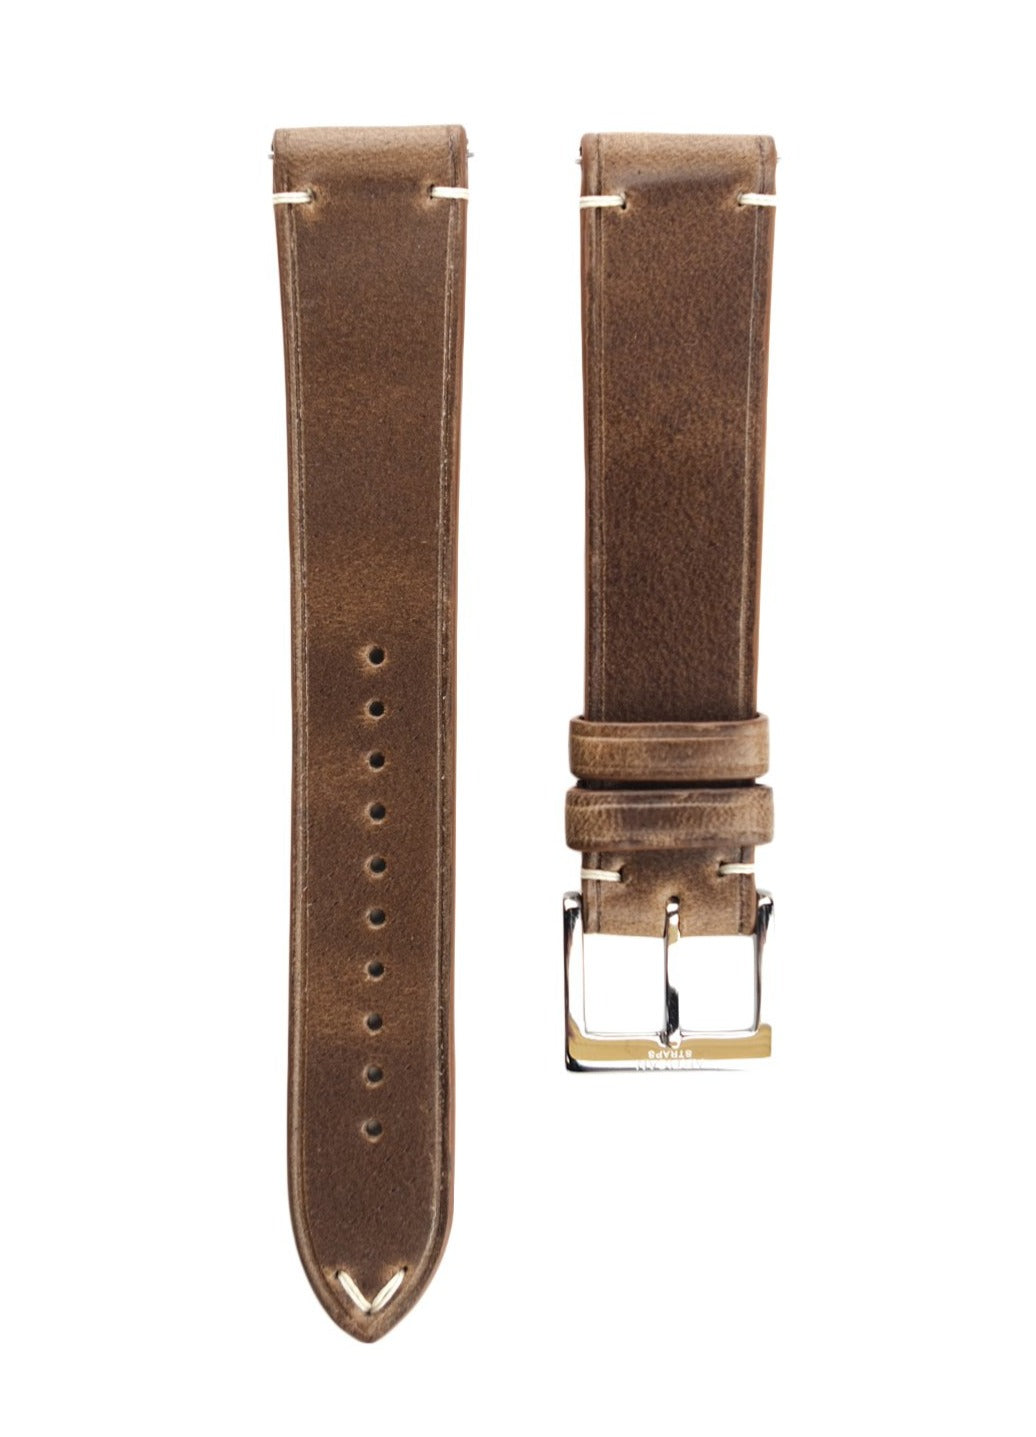 Horween Chromexcel Two-Stitch Calf Leather Watch Strap in Natural